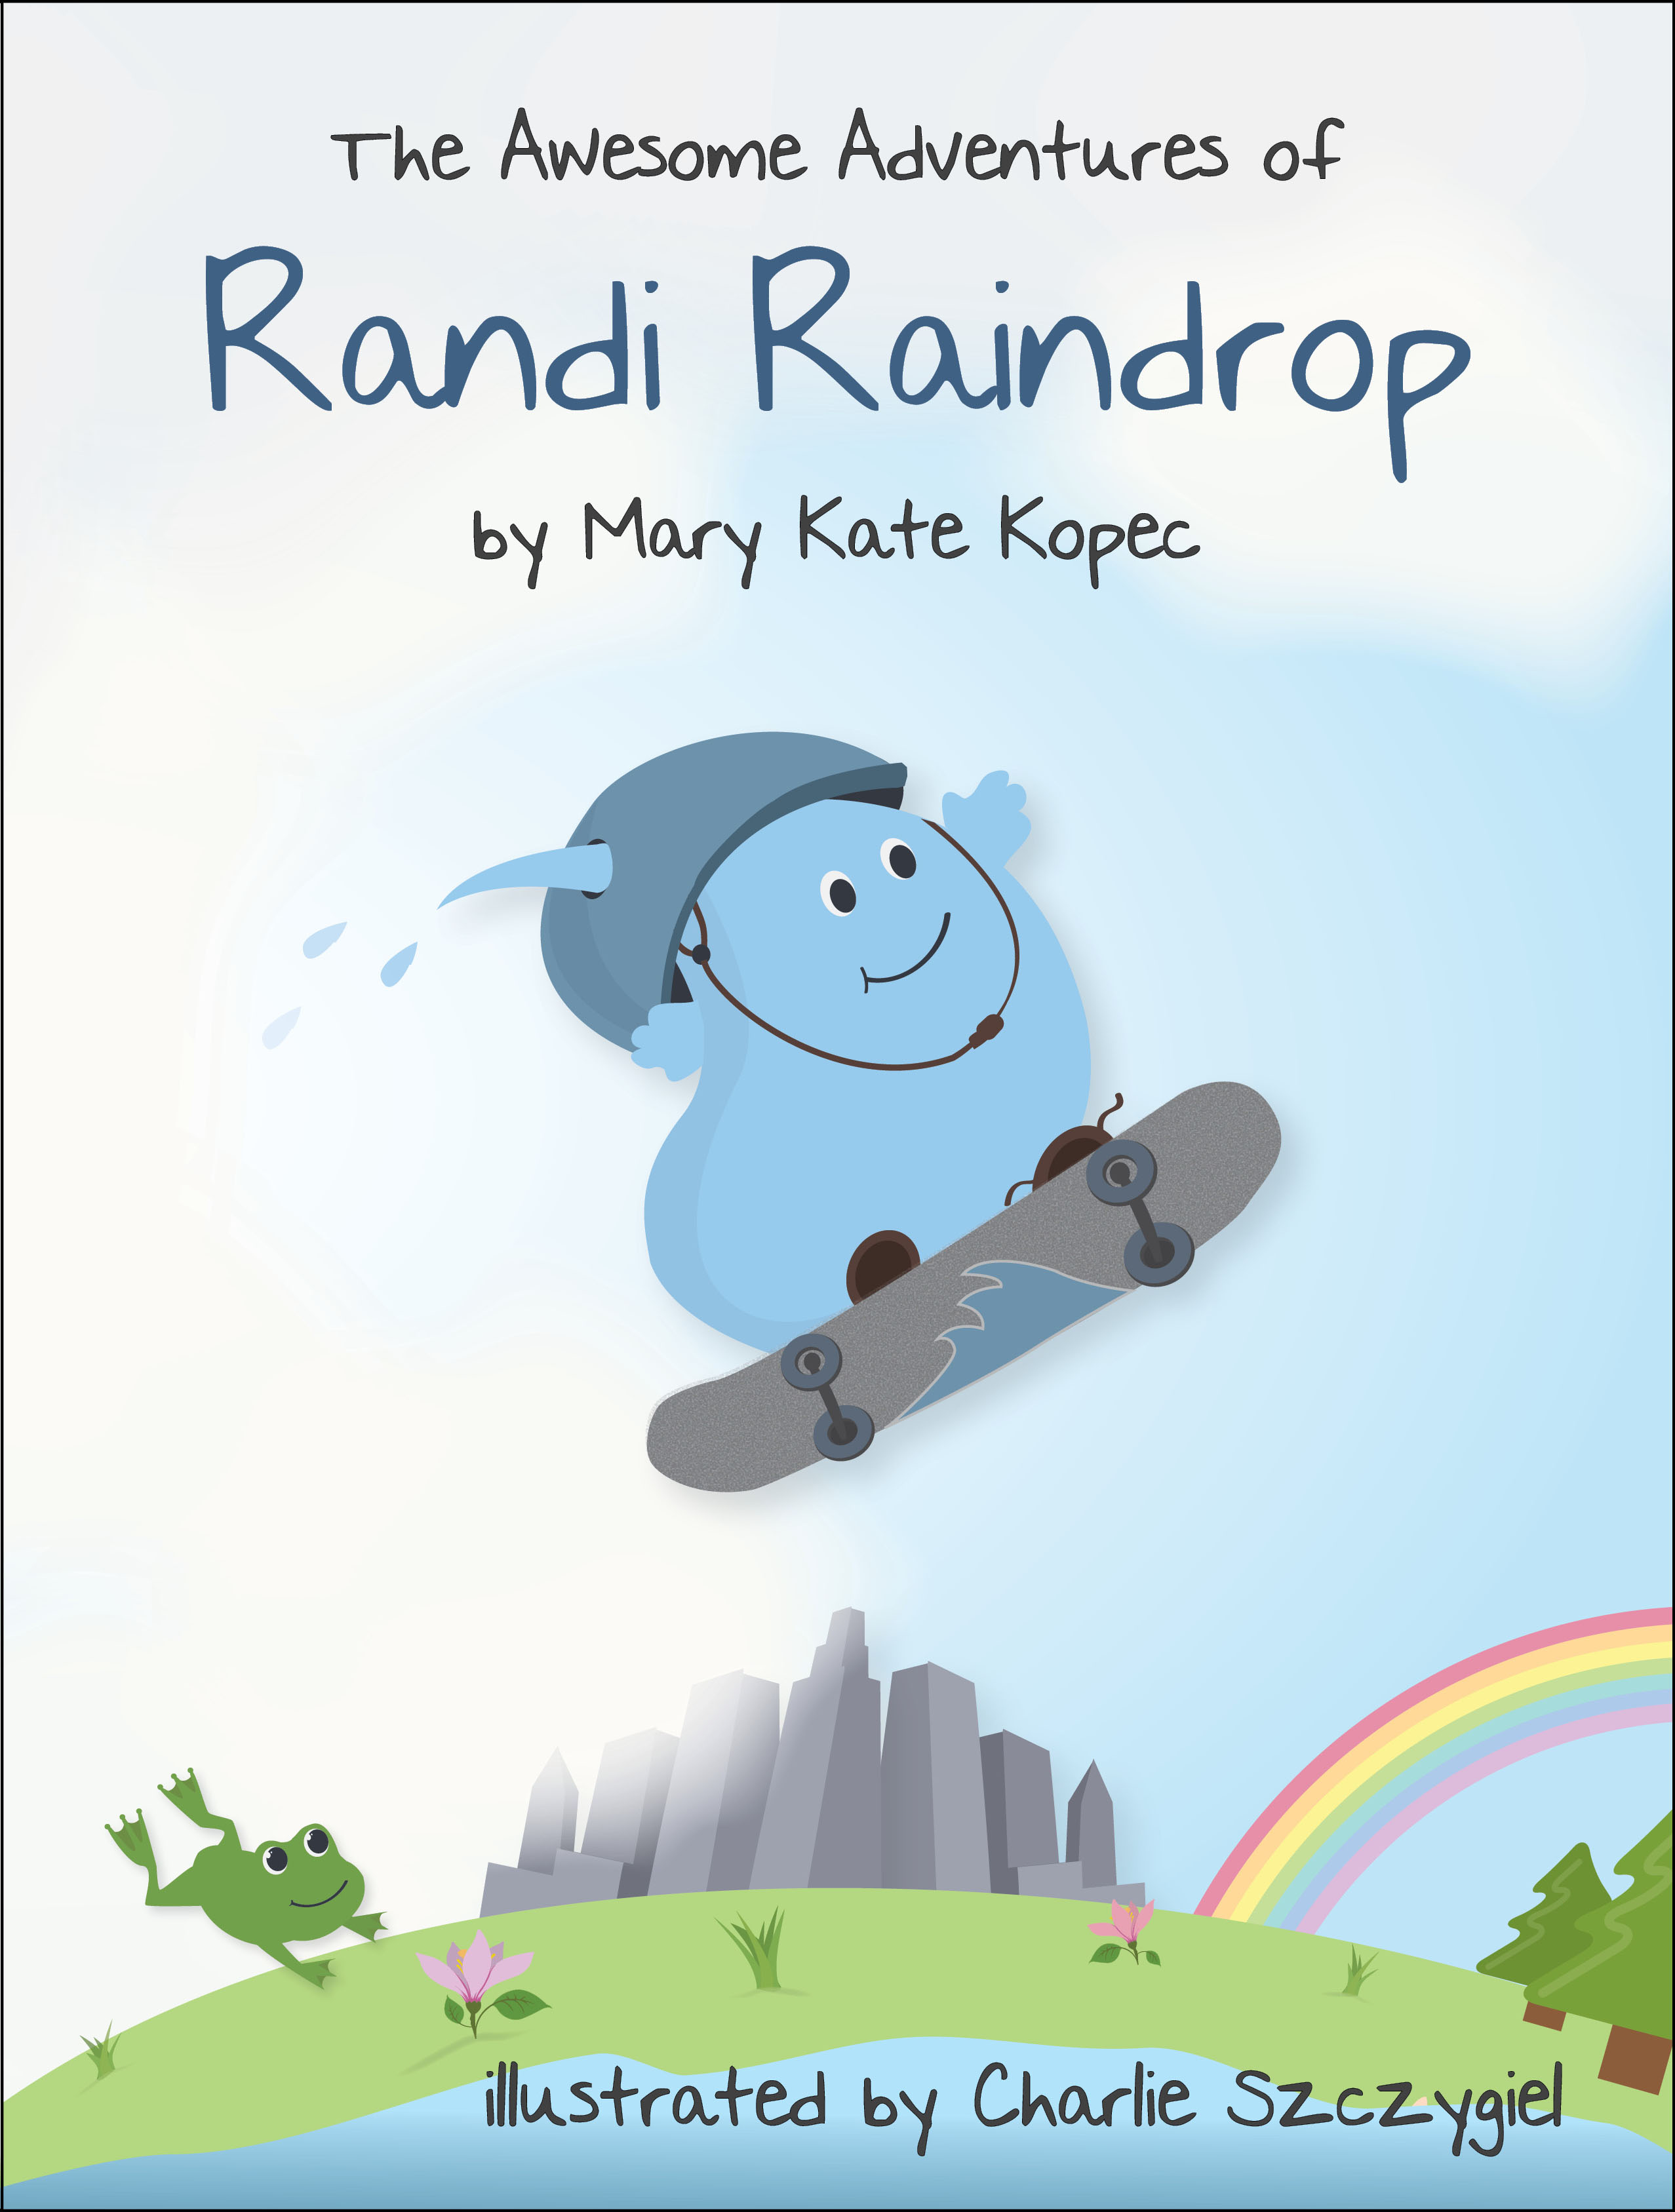 The Awesome Adventures of Randi Raindrop book cover